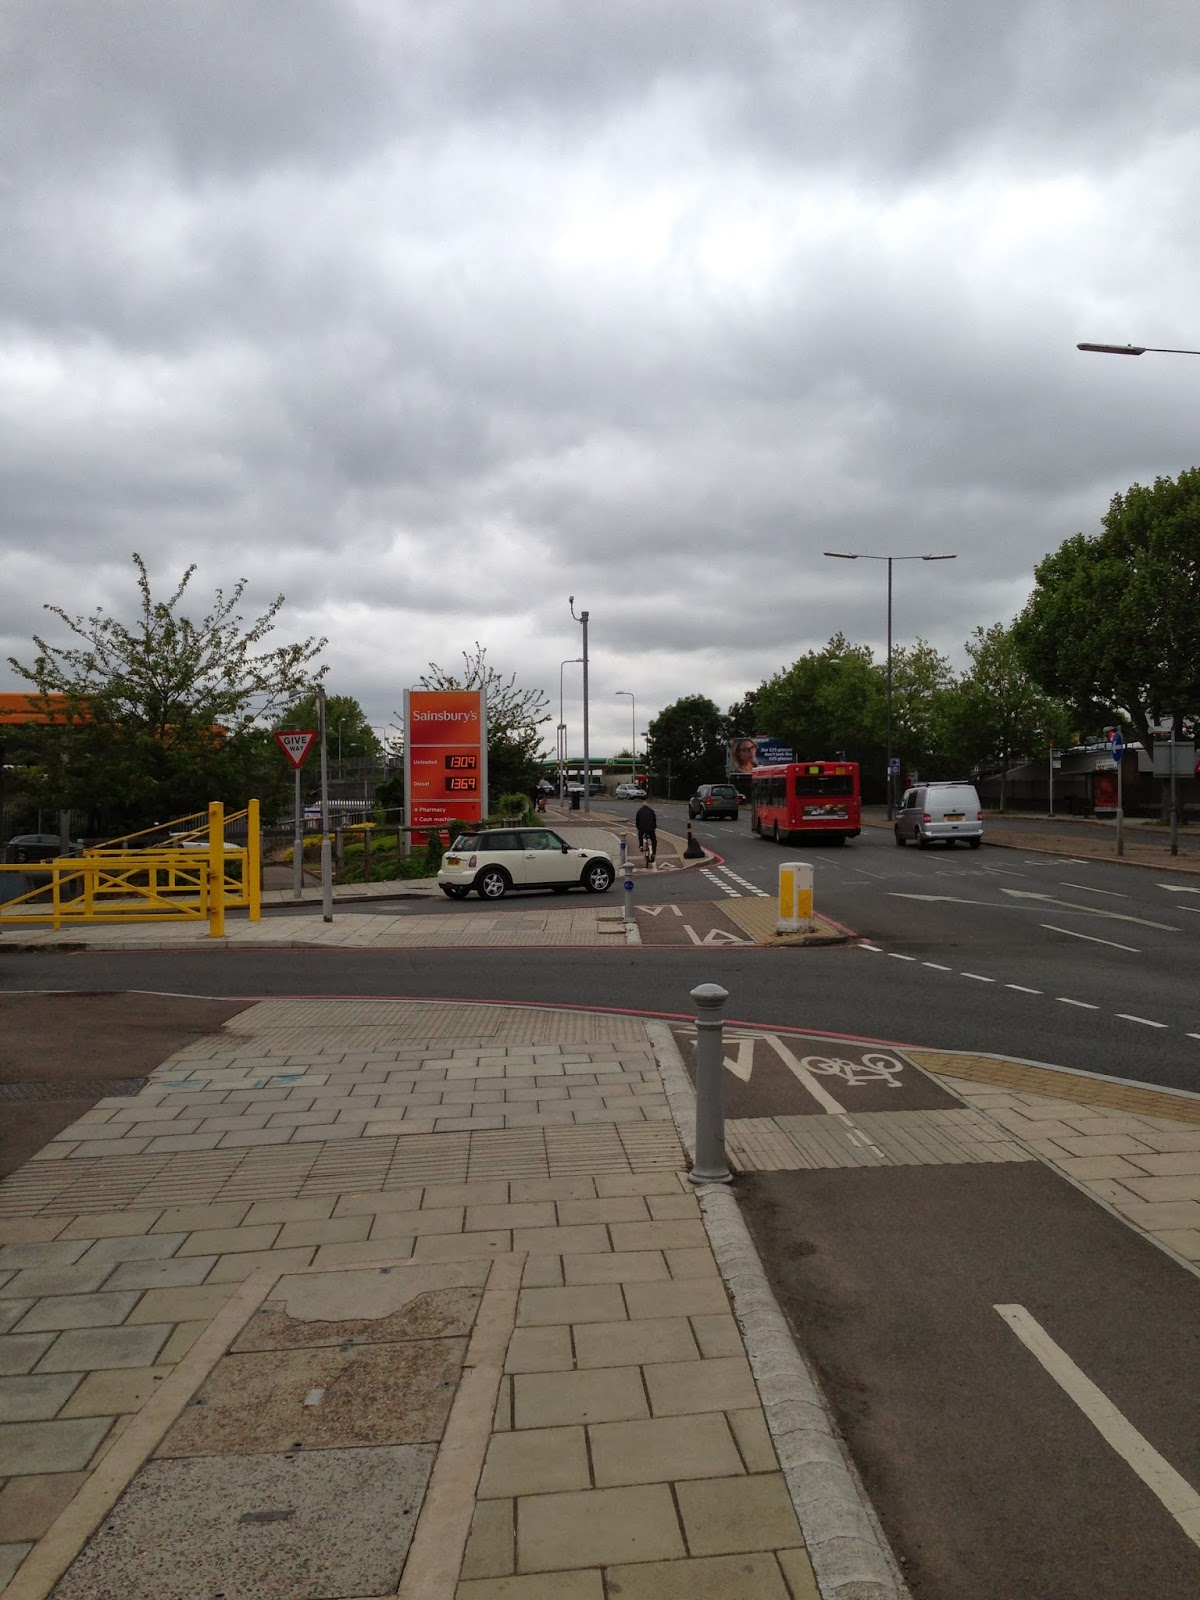 Cycle land on Lower Richmond Road (A316) interrupted by Sainsbury's entrance